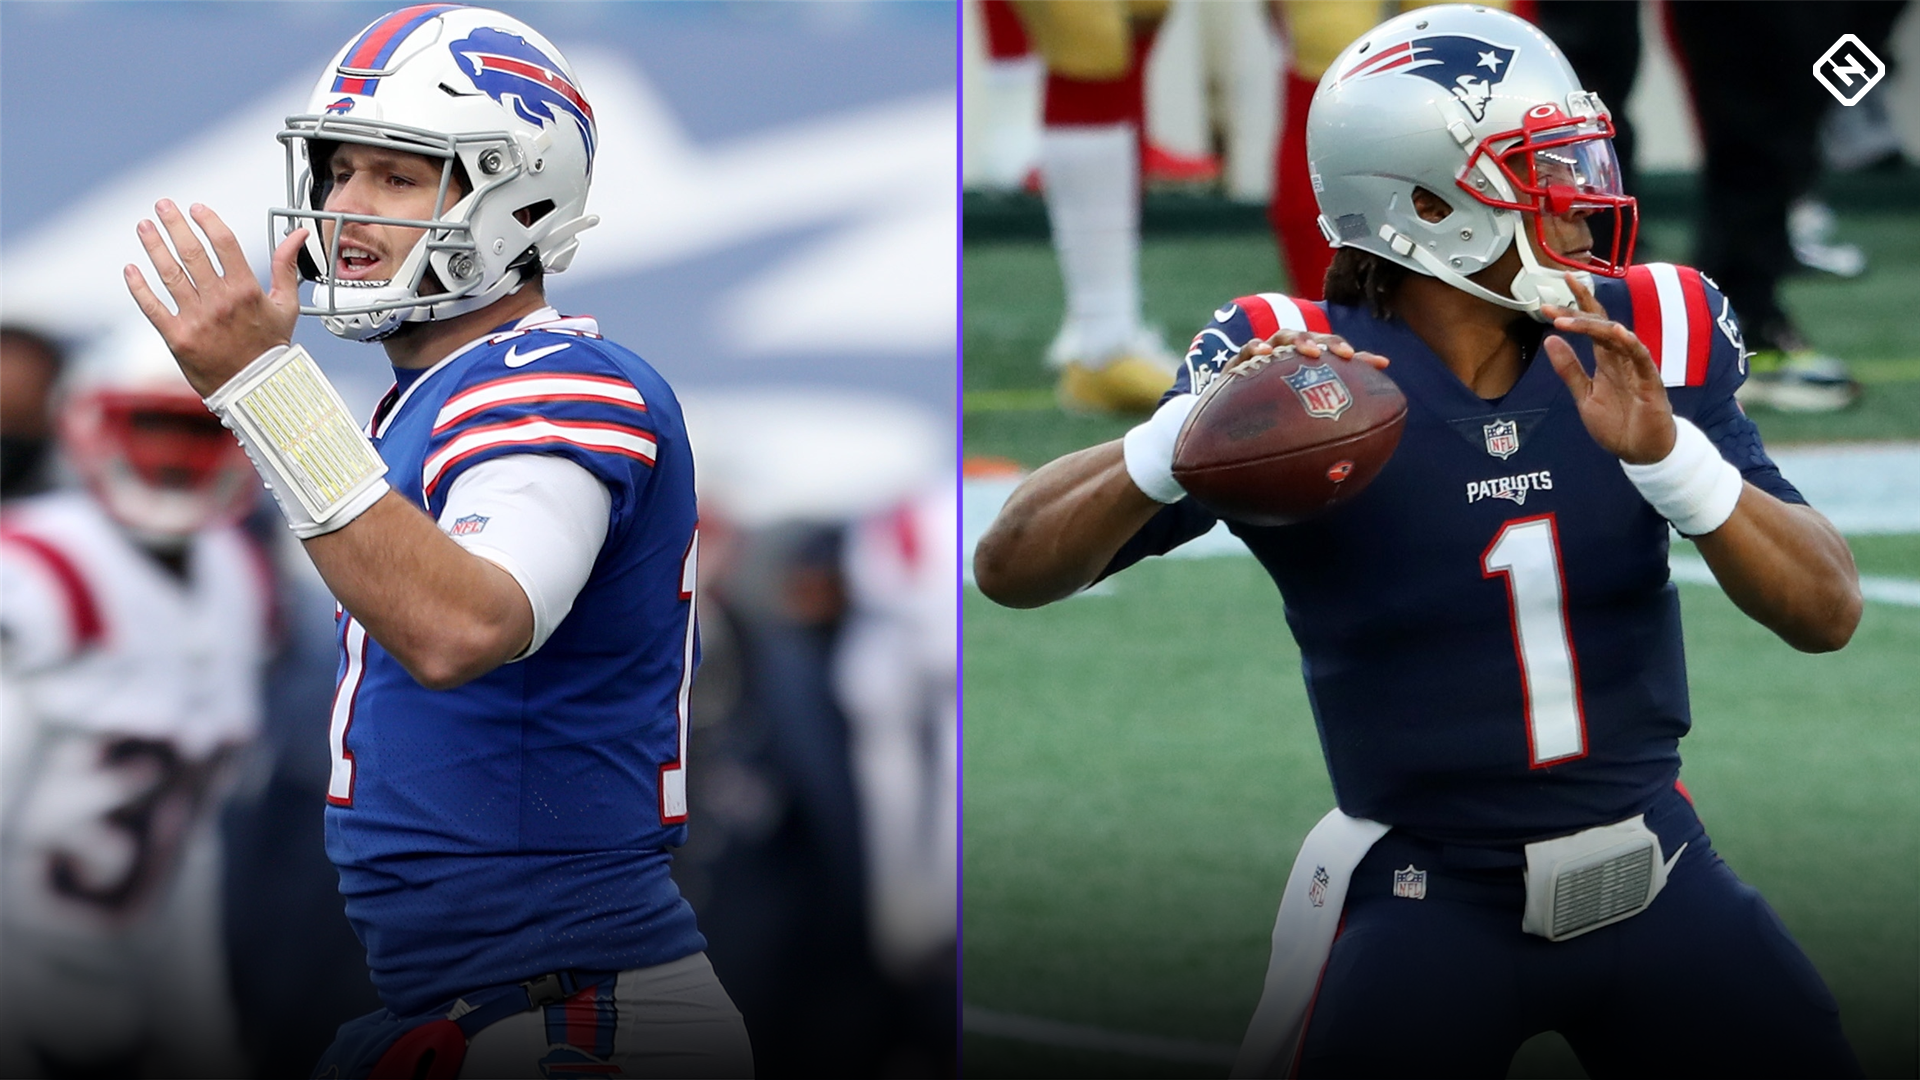 Patriots bills betting preview nfl marseille nice betting previews